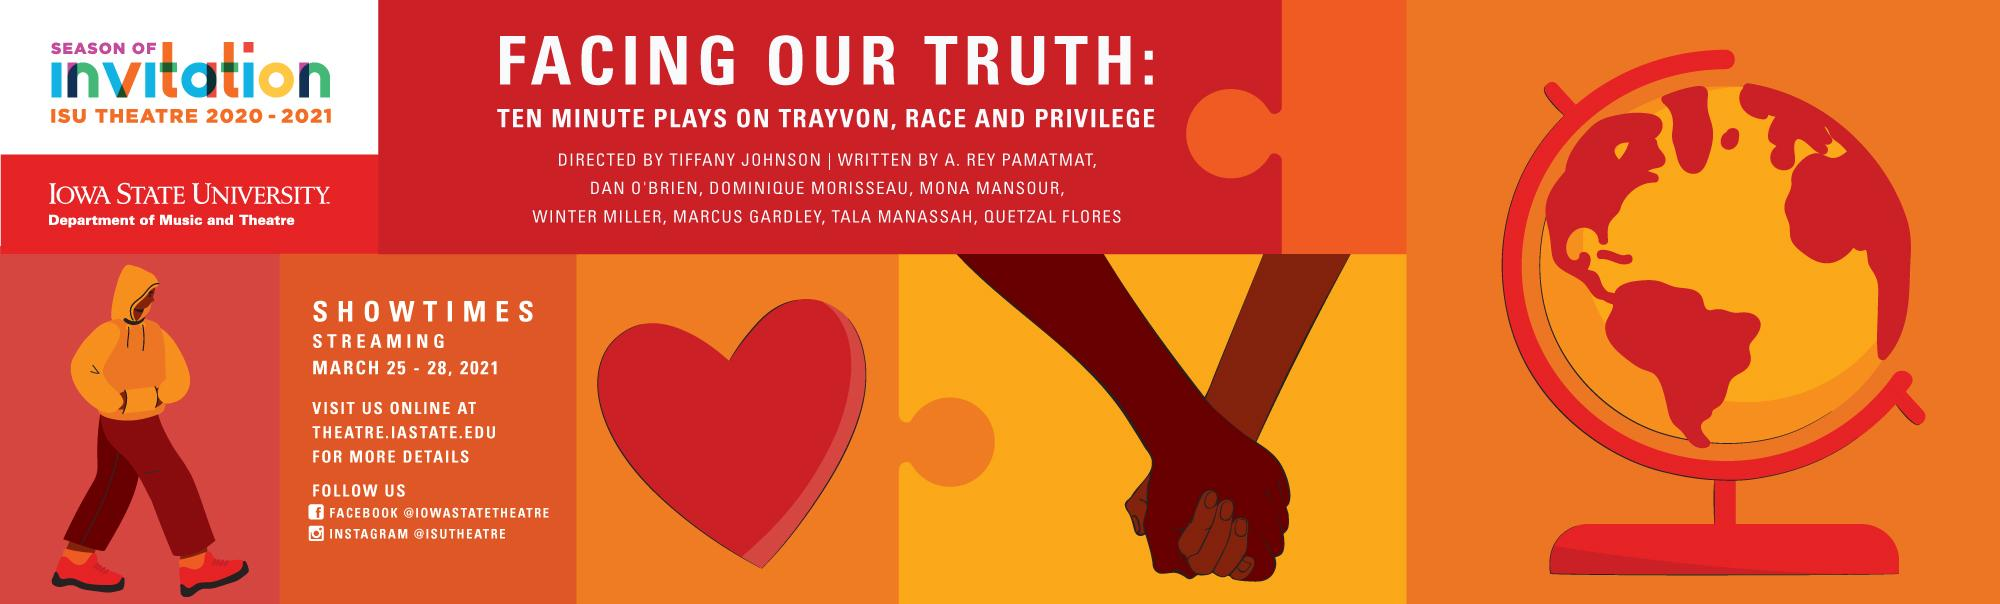 ISU Theatre presents FACING OUR TRUTH: TEN MINUTE PLAYS ON TRAYVON, RACE AND PRIVILEGE